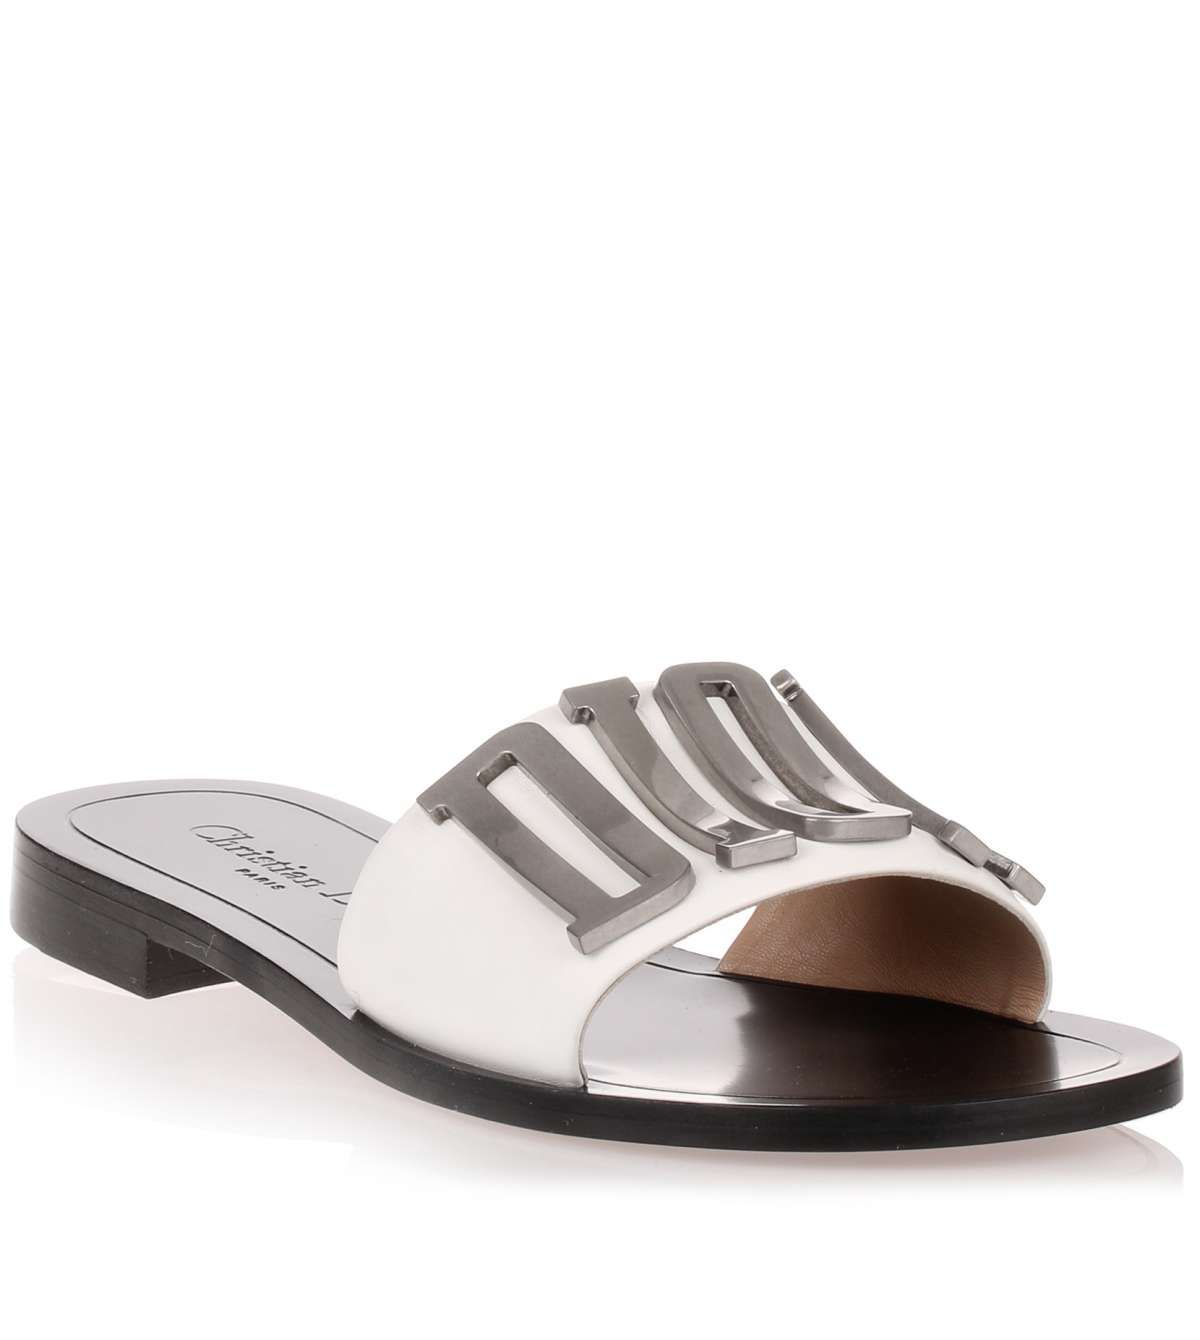 Diorevolution white leather slide from